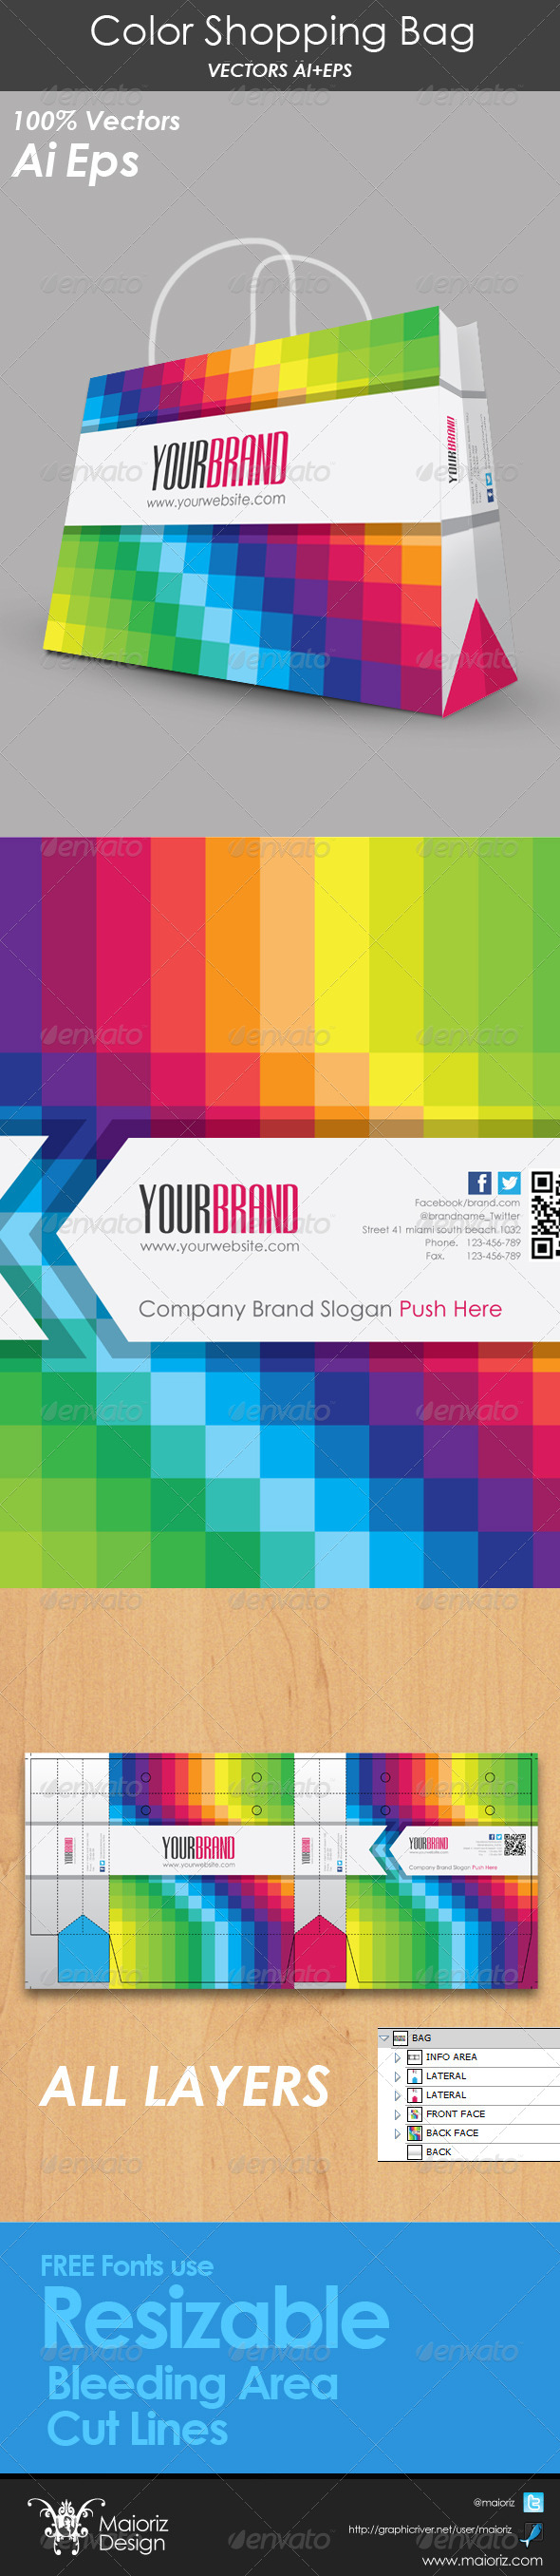 Color Shopping Bag - Packaging Print Templates